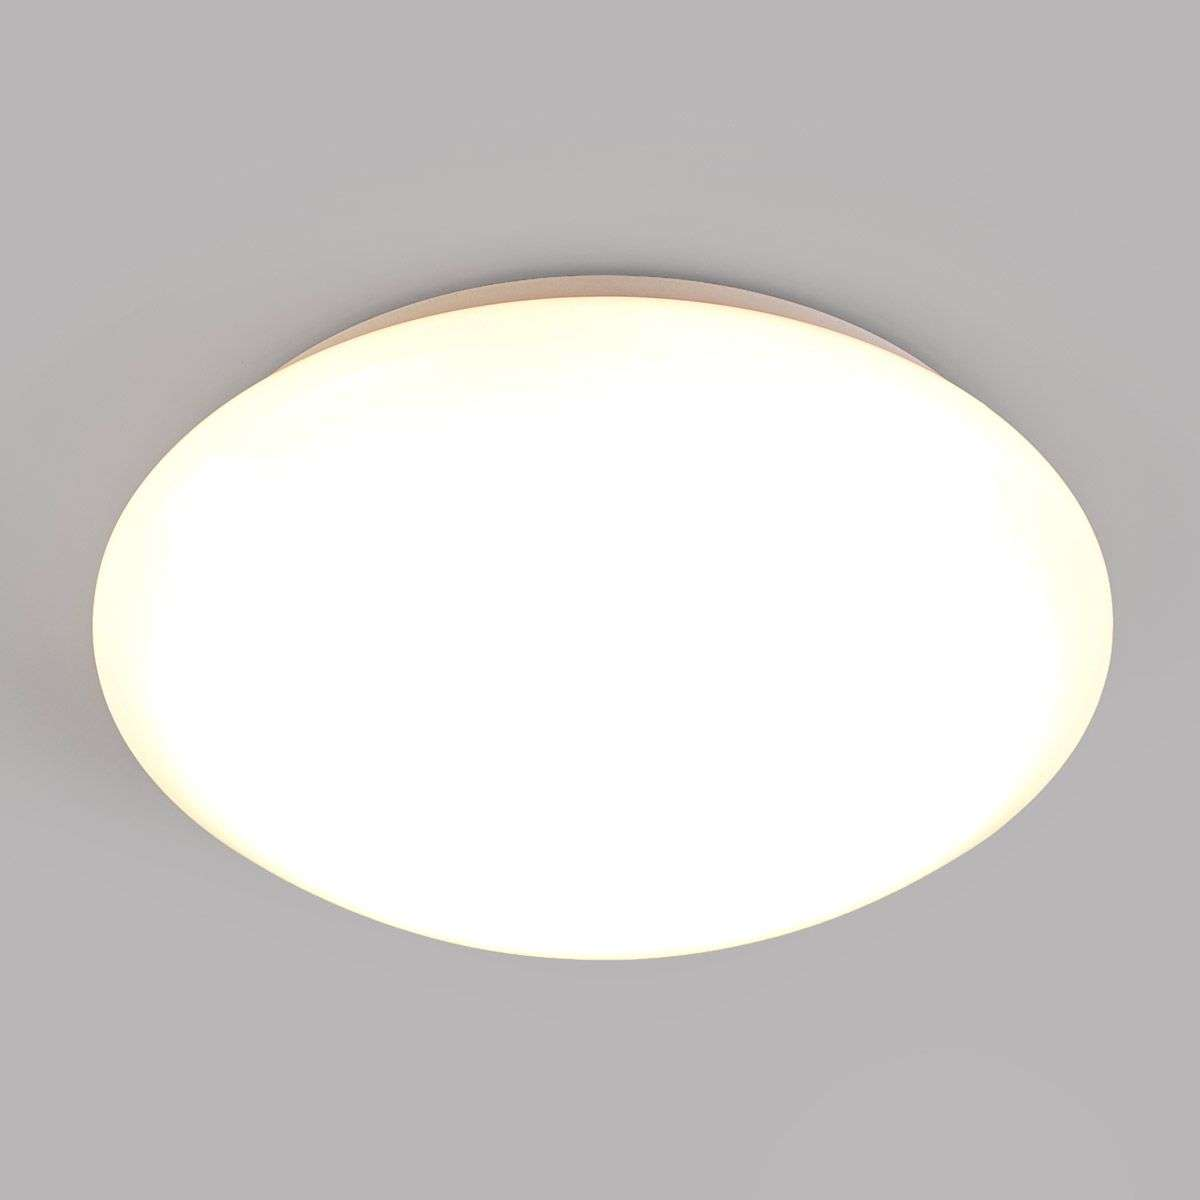 Simple Led Bathroom Ceiling Lamp Selveta 30 Cm